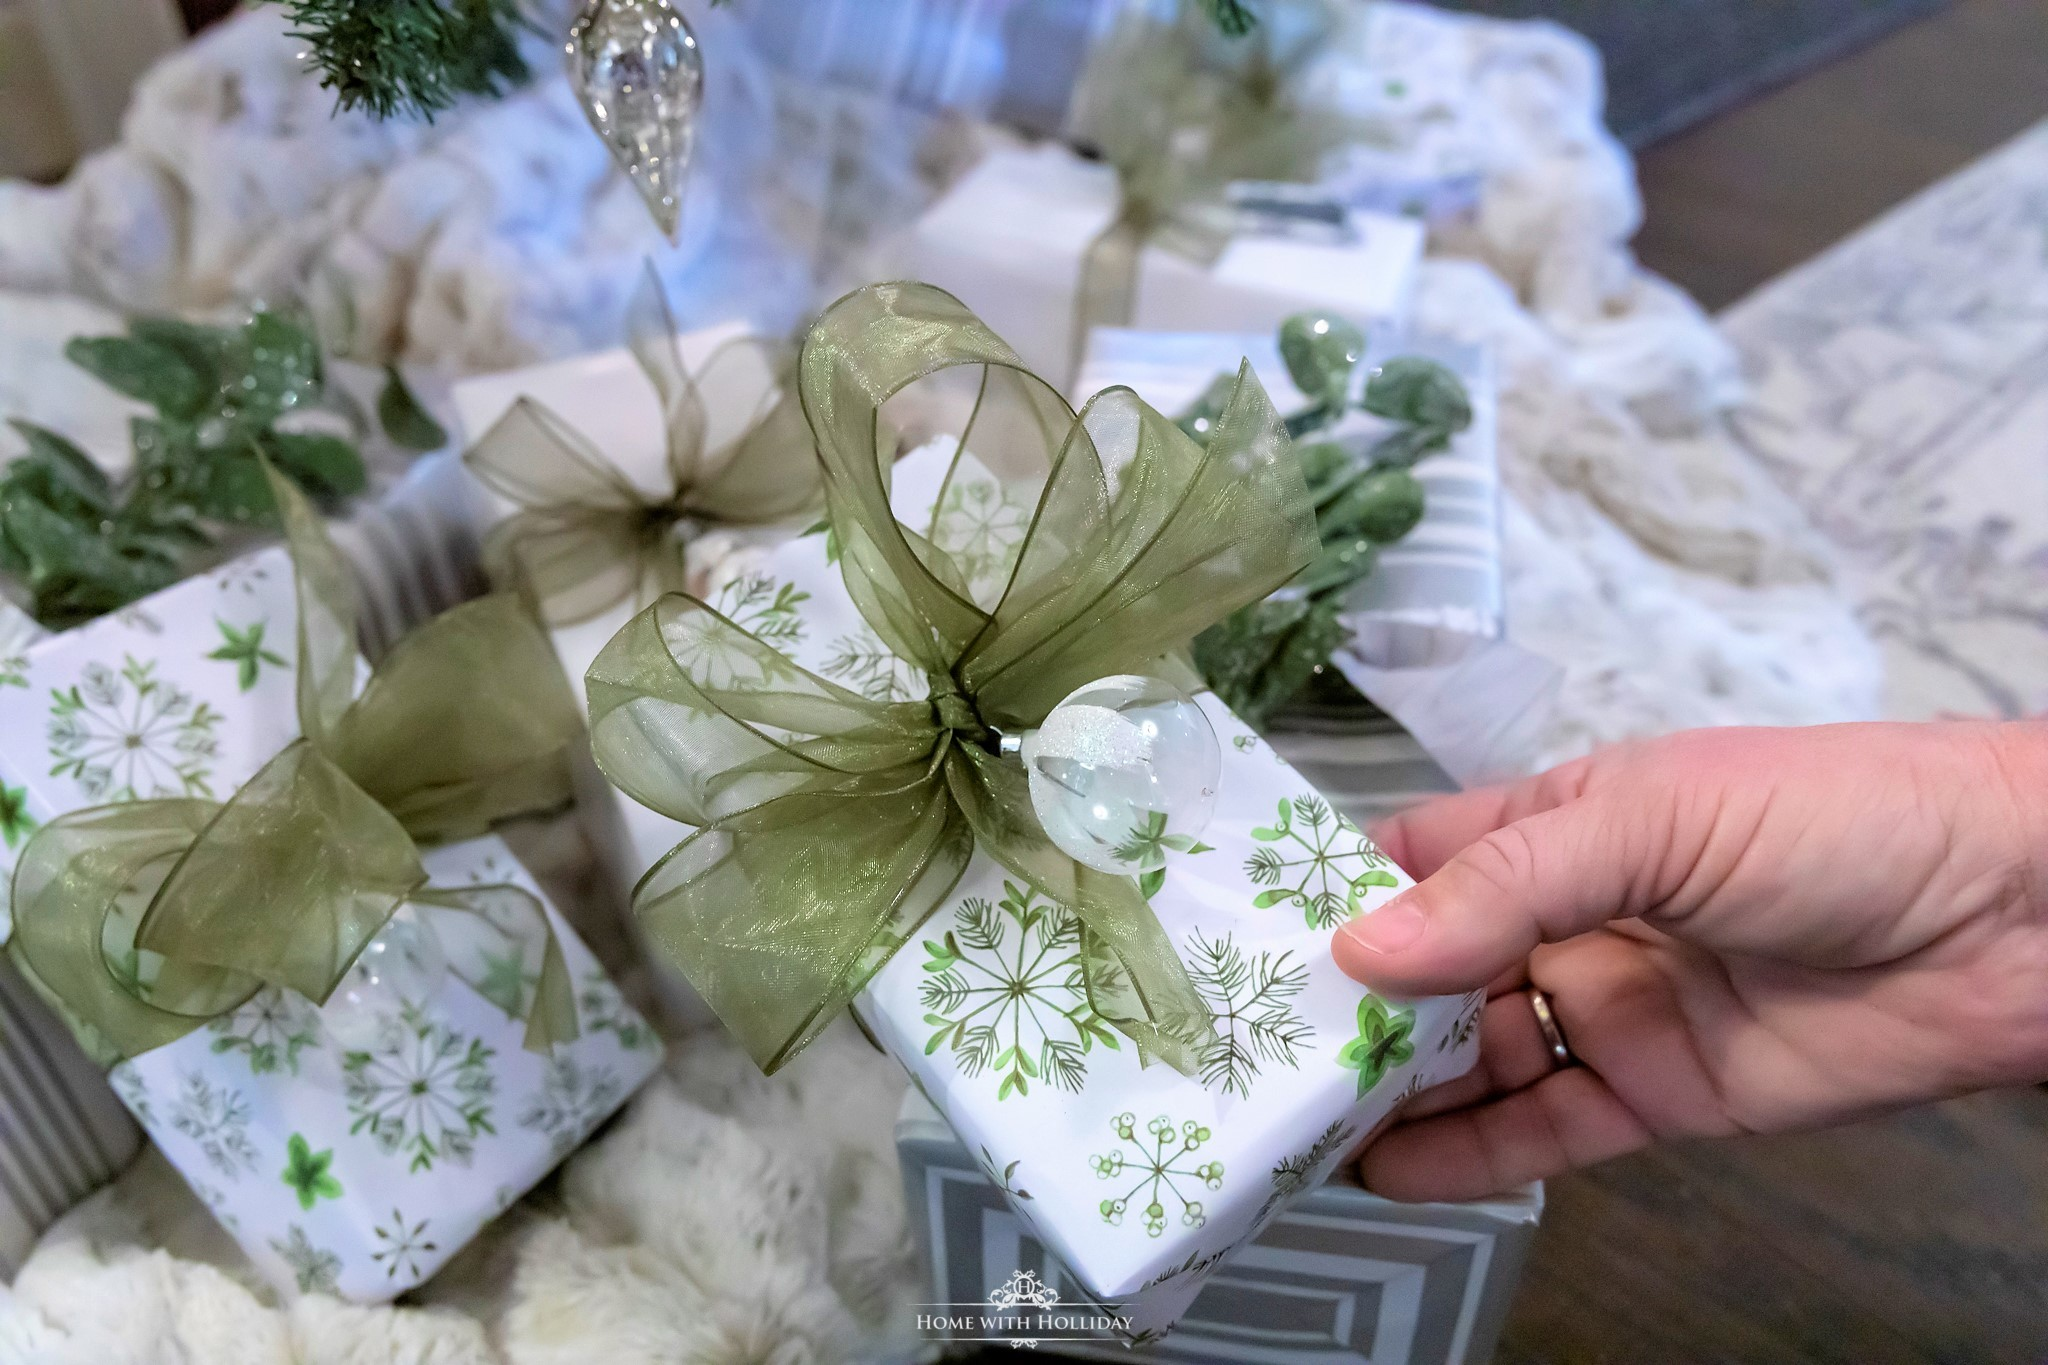 Our Christmas Home Tour - Gift wrapping Ideas - Home with Holliday